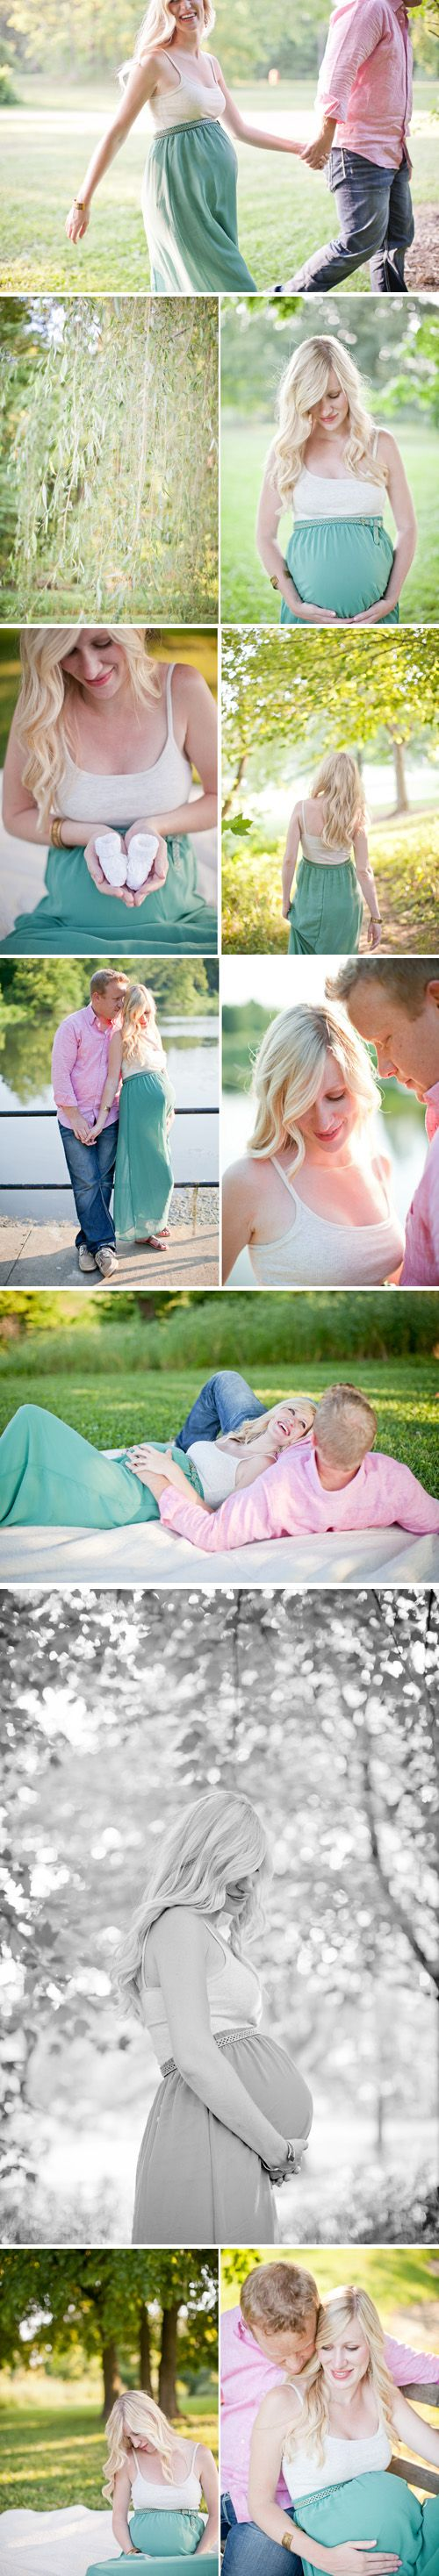 Pastel, outdoors, maternity and pregnancy photography ideas, belly shots